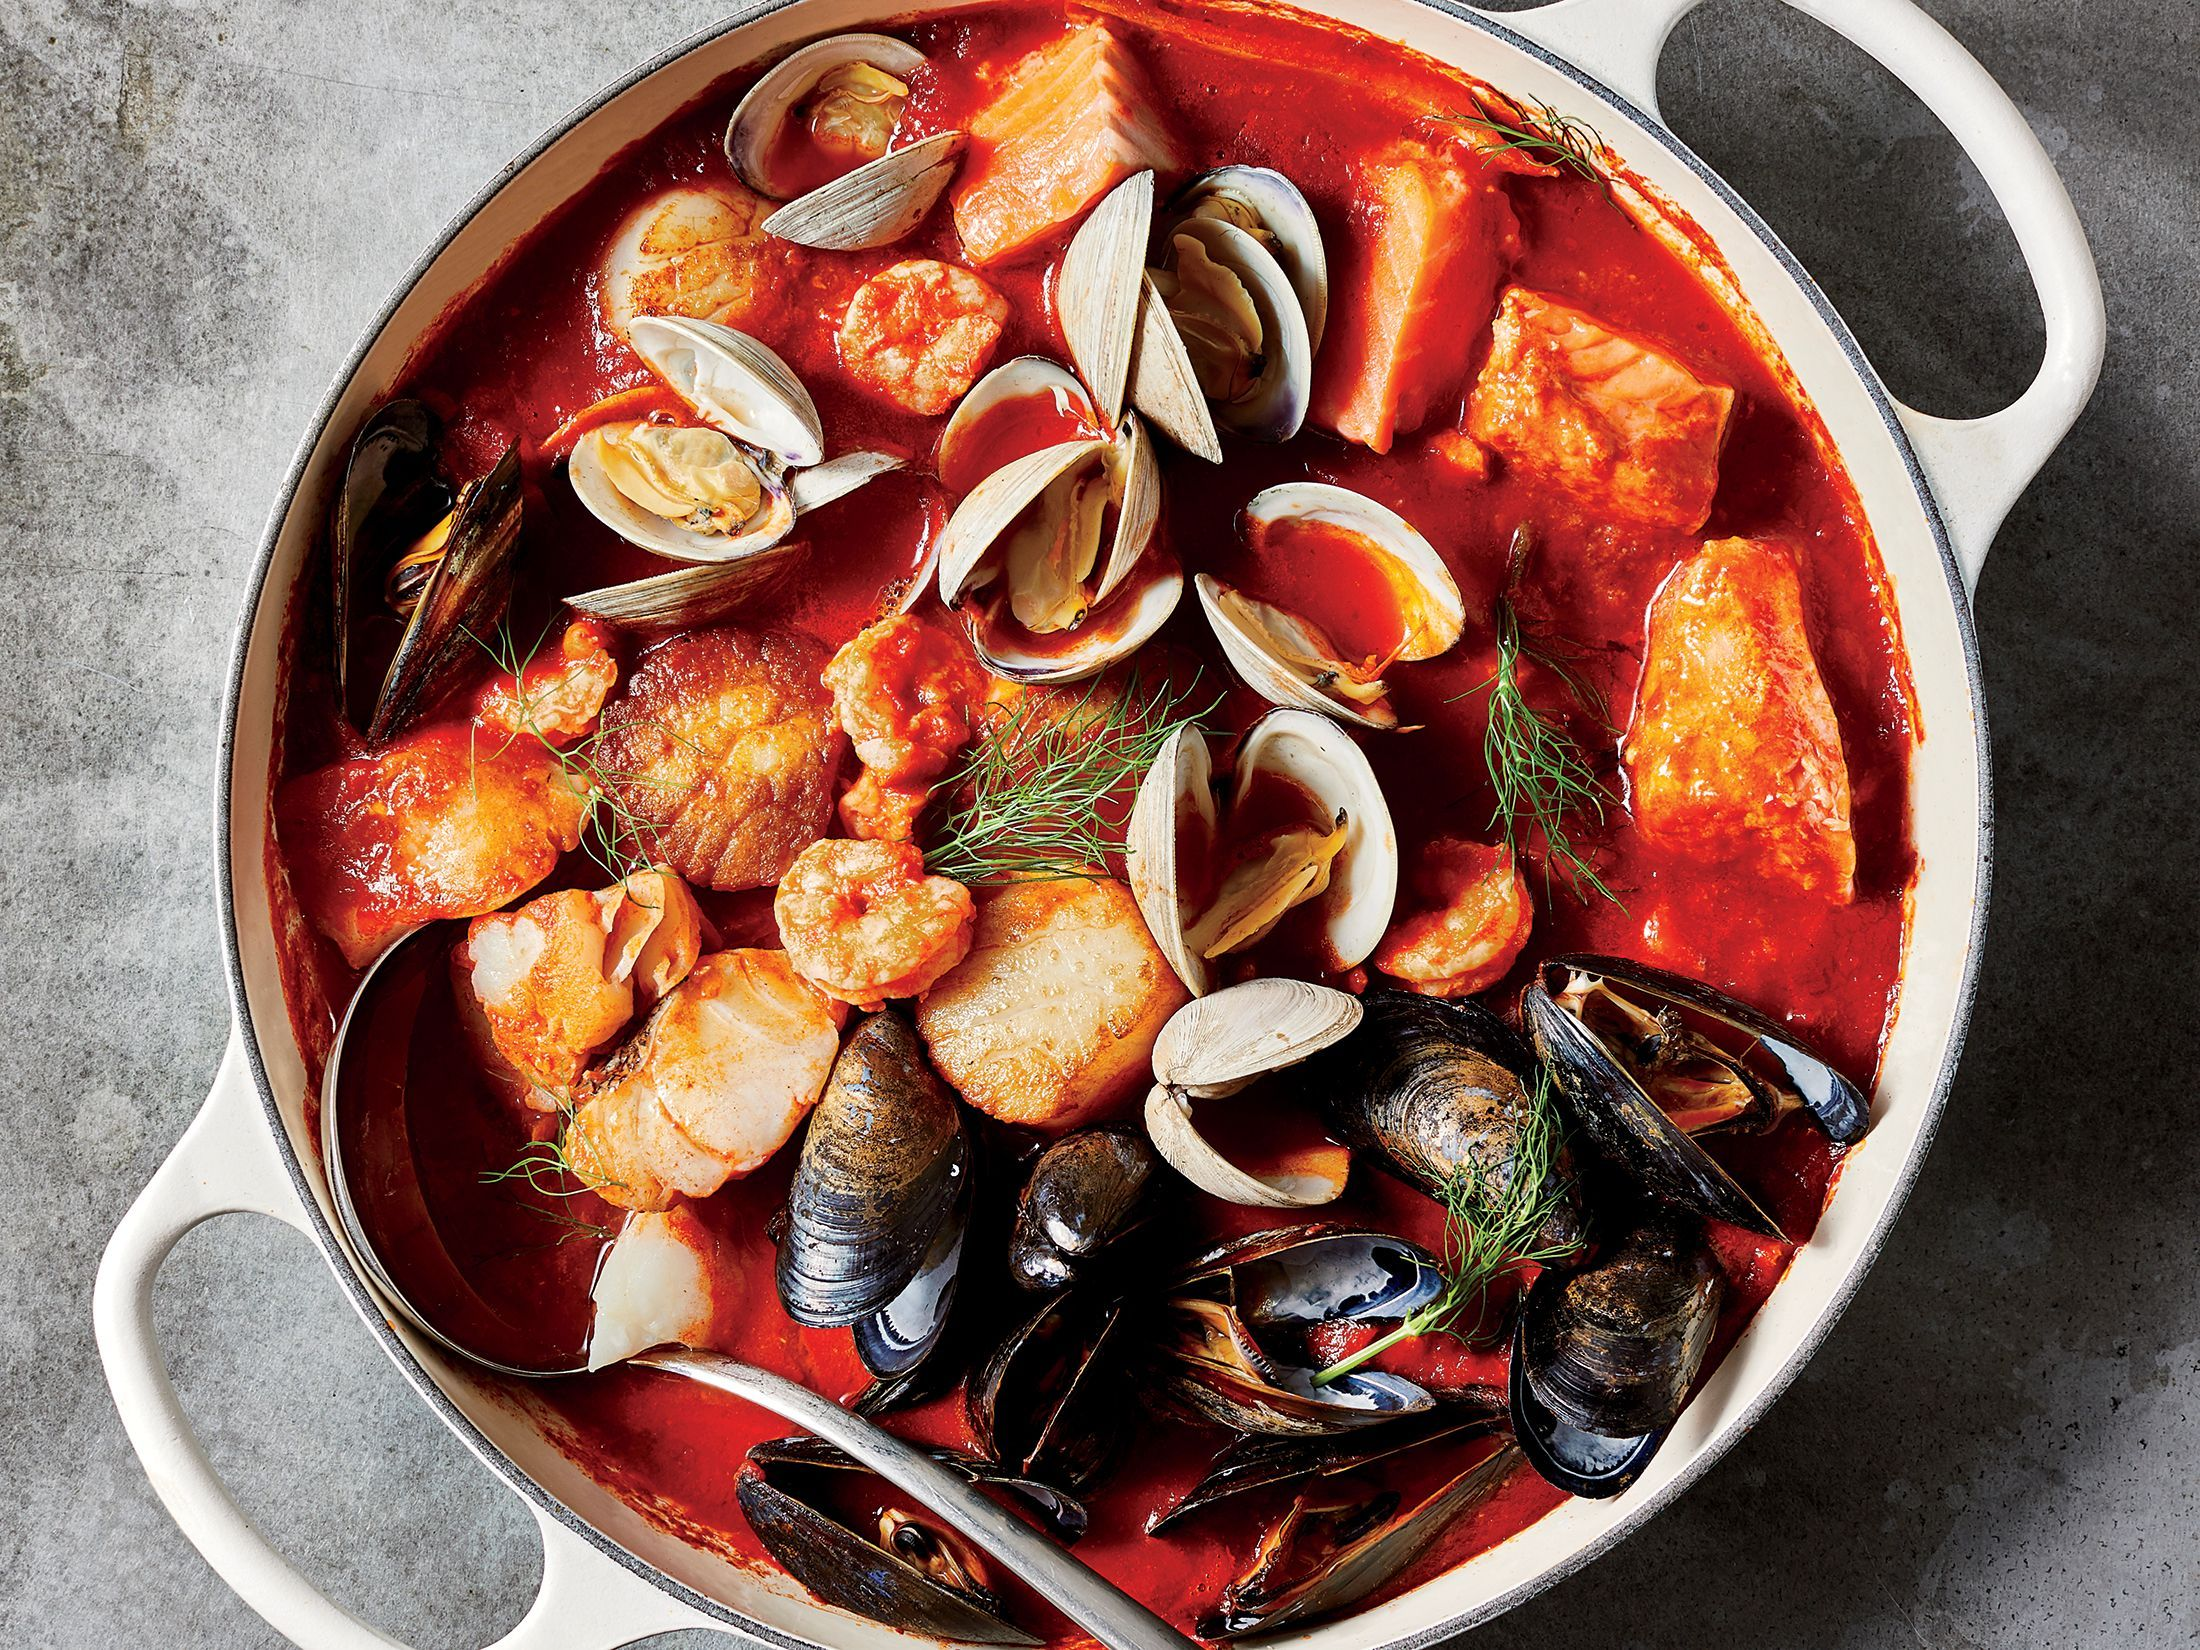 Cocktails Italian Christmas Dishes Italian Christmas Dishes Italian Christmas Eve Appetizers Antipasto Platter In 2020 Fish Stew Recipes Fish Stew Stew Dinner